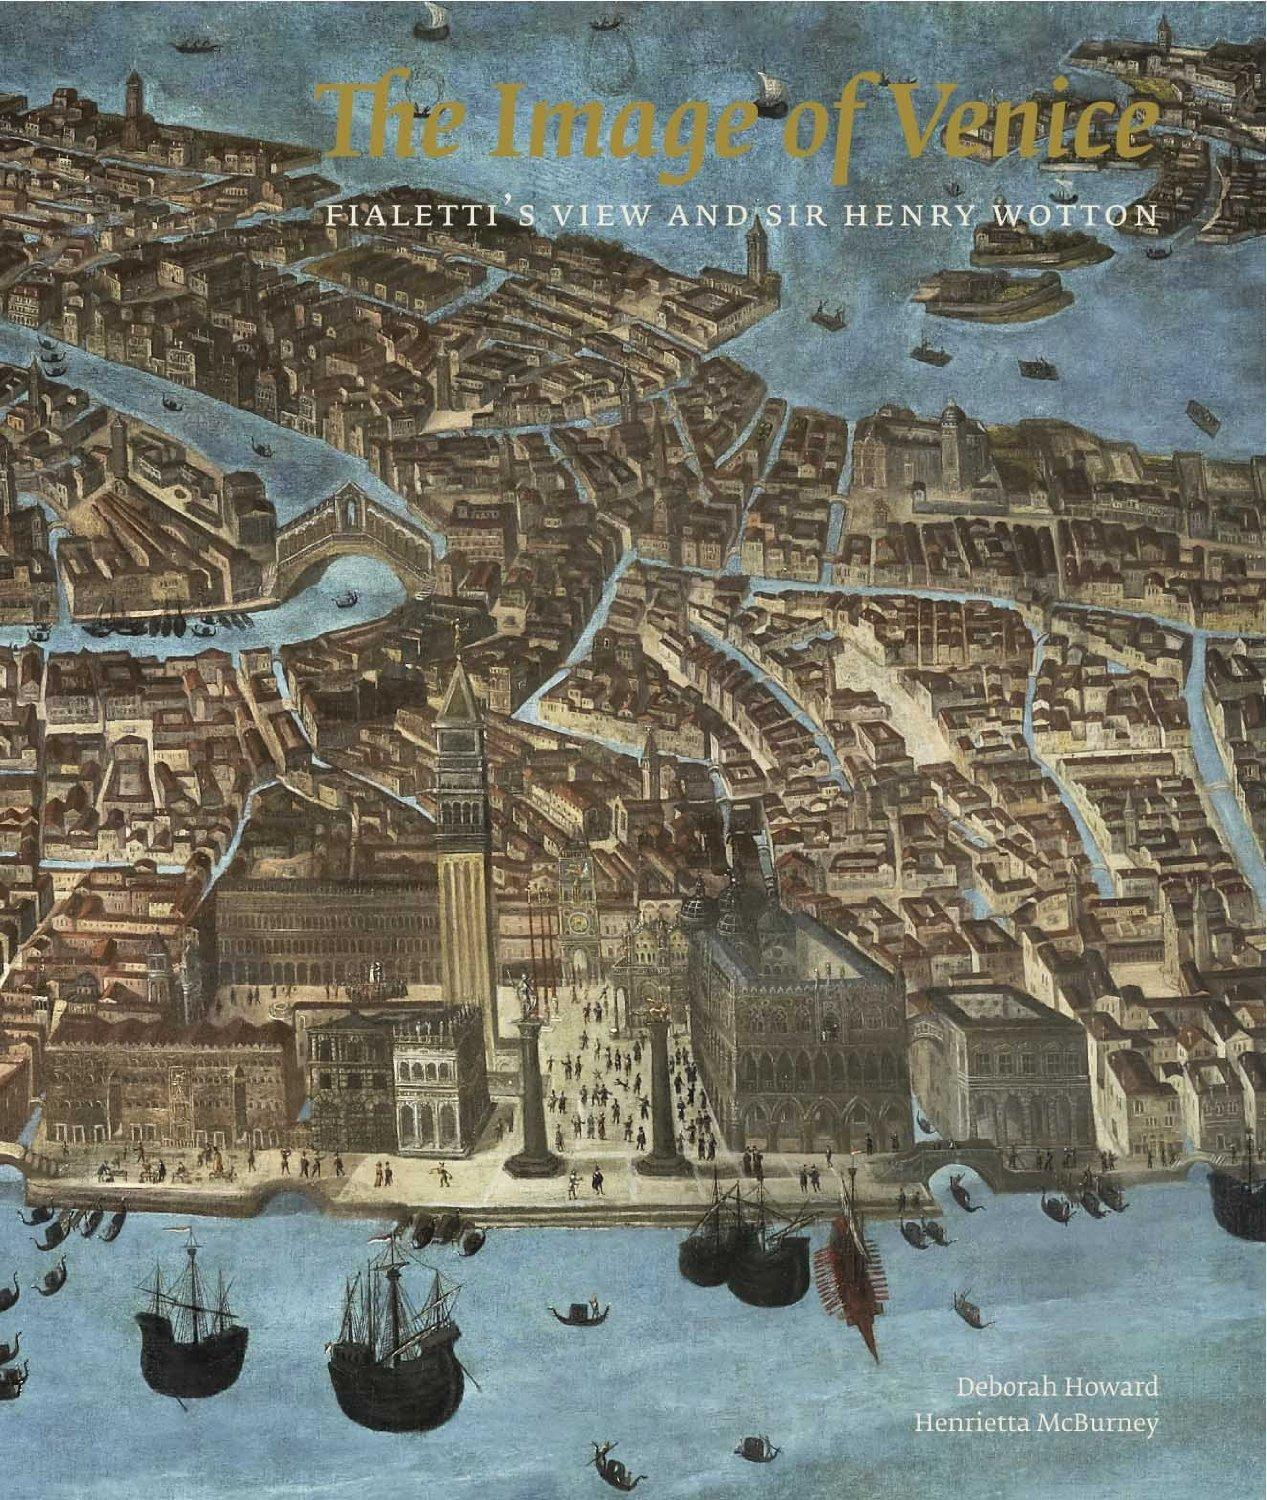 'The Image of Venice: Fialetti's View and Sir Henry Wotton': a new book by Deborah Howard and Henrietta McBurney